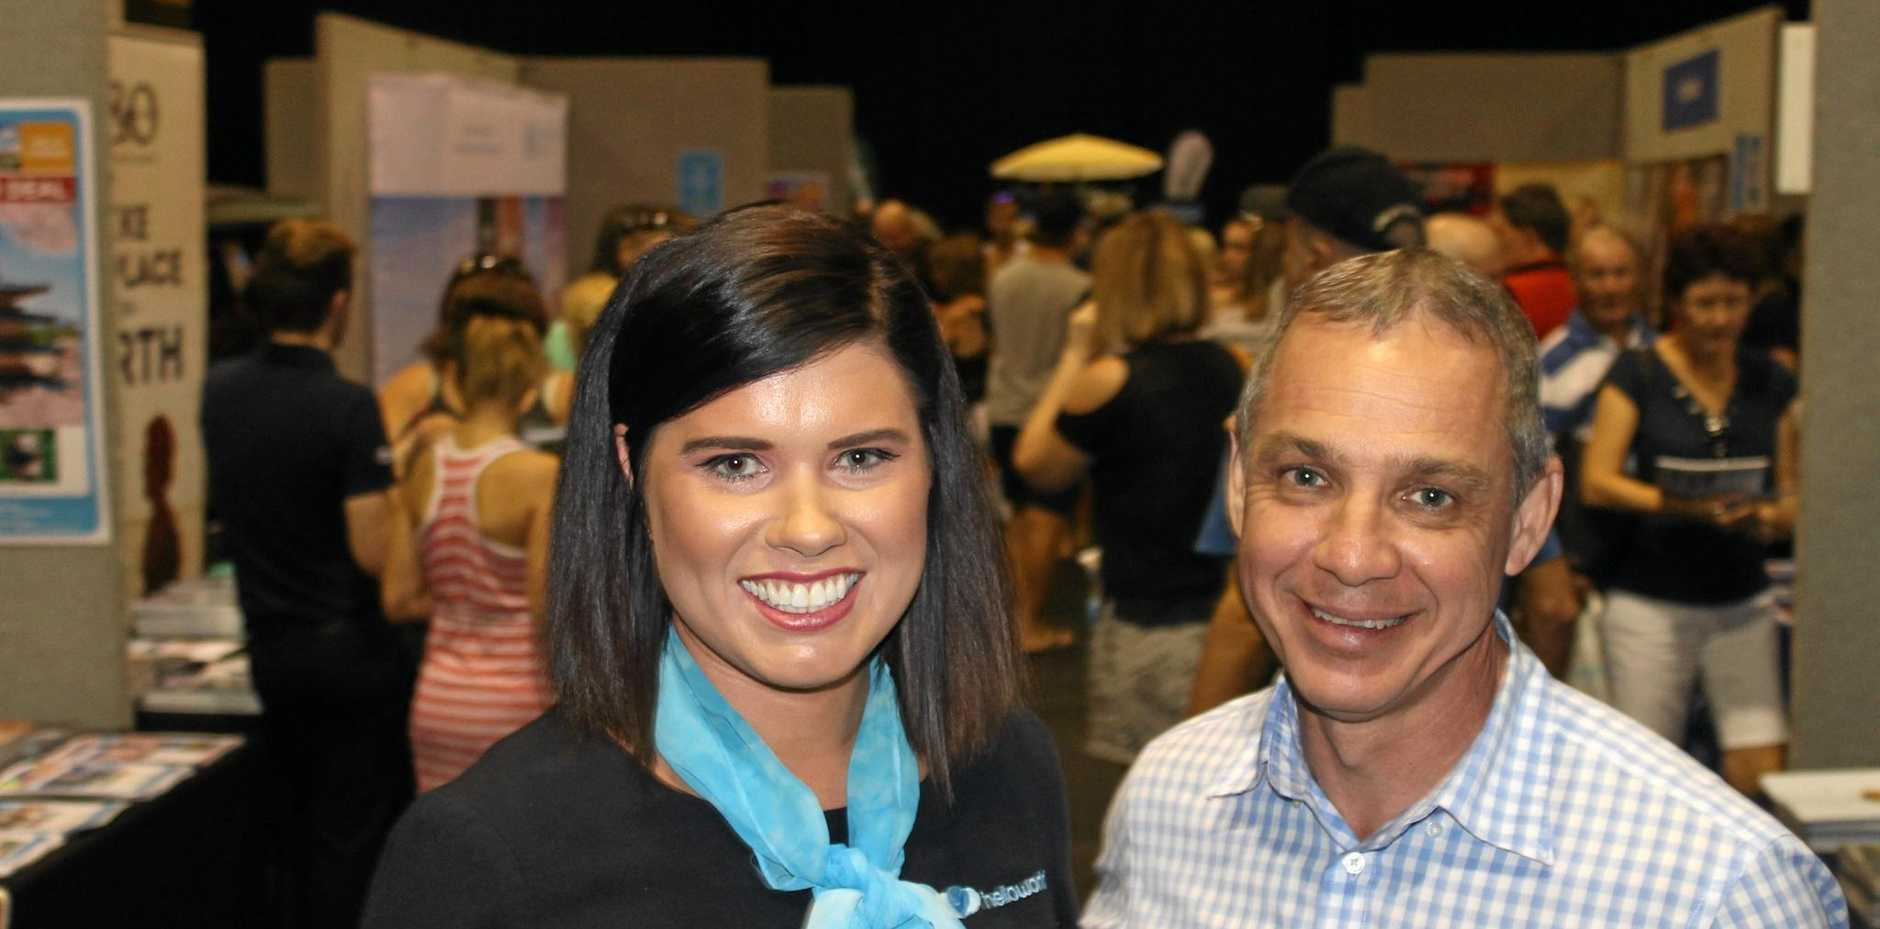 helloworld Mackay's Laura Barwell, marketing manager, and Mark Walter, general manager, were thrilled with the turnout at the travel company's Travel Expo on Saturday. It was estimated 5000 people were drawn to the deals, seminars and expert advice on offer at Saturday's event.